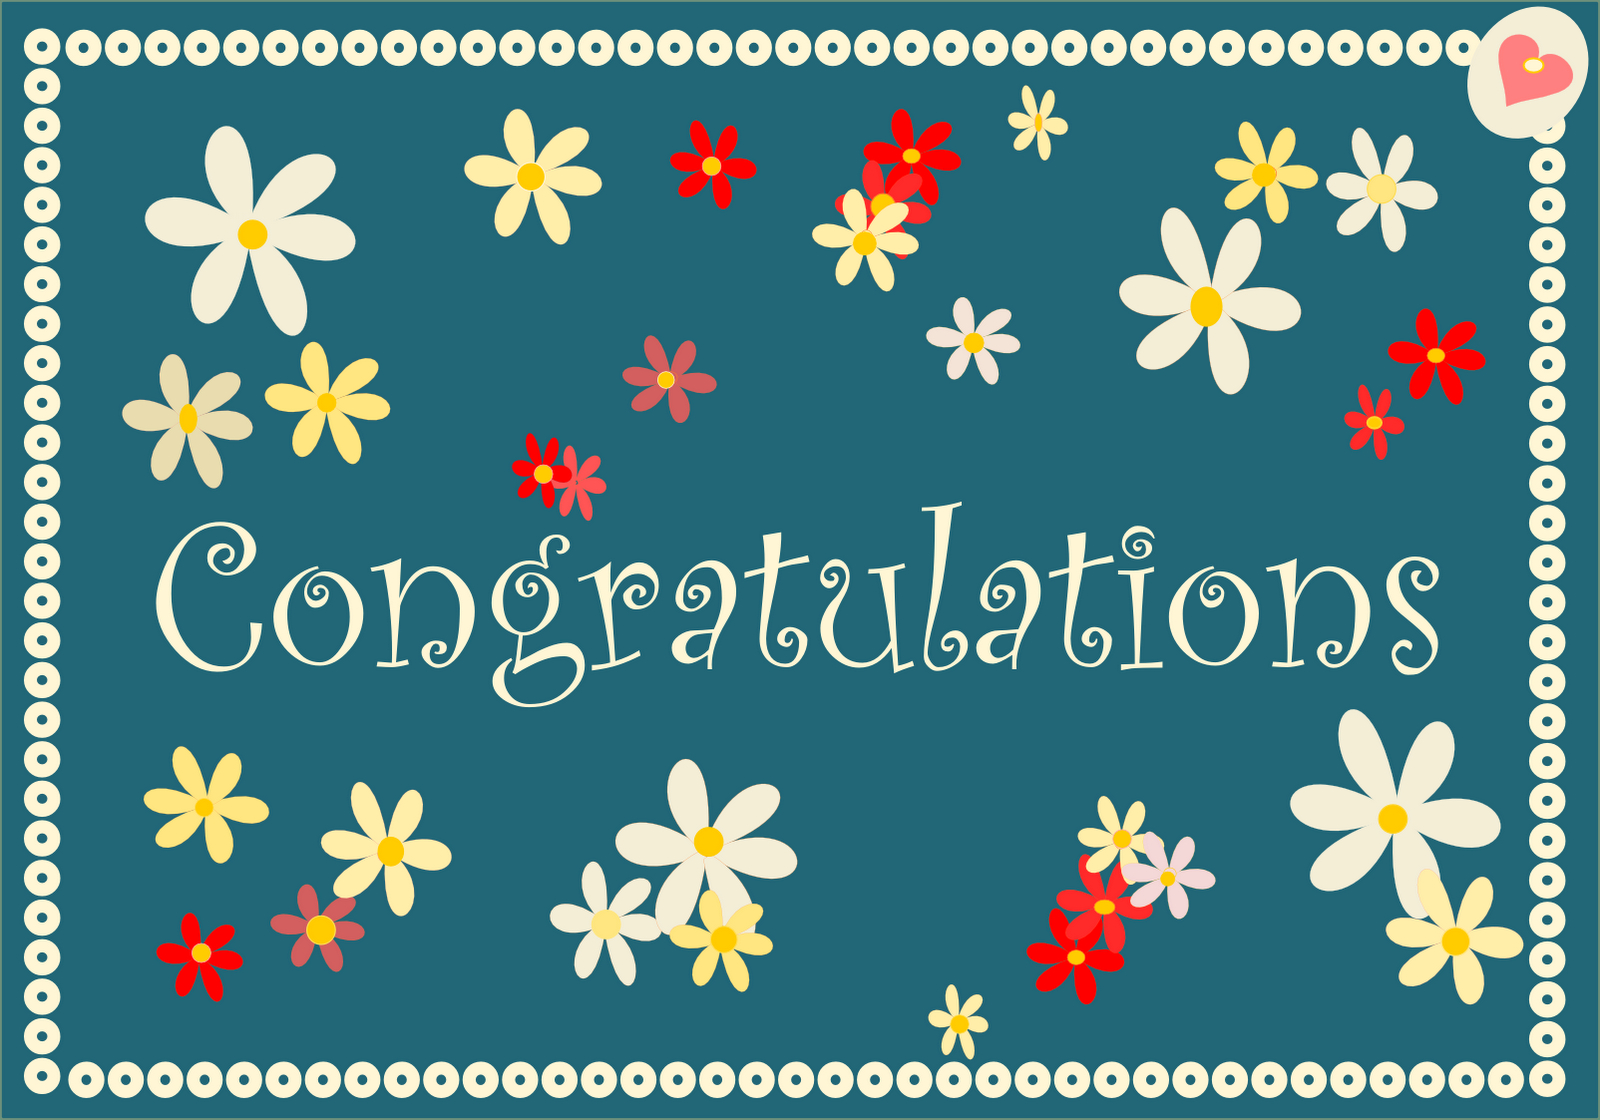 Free Printable Congratulations Cards In Retro Colors - Ausdruckbare - Free Printable Congratulations Cards